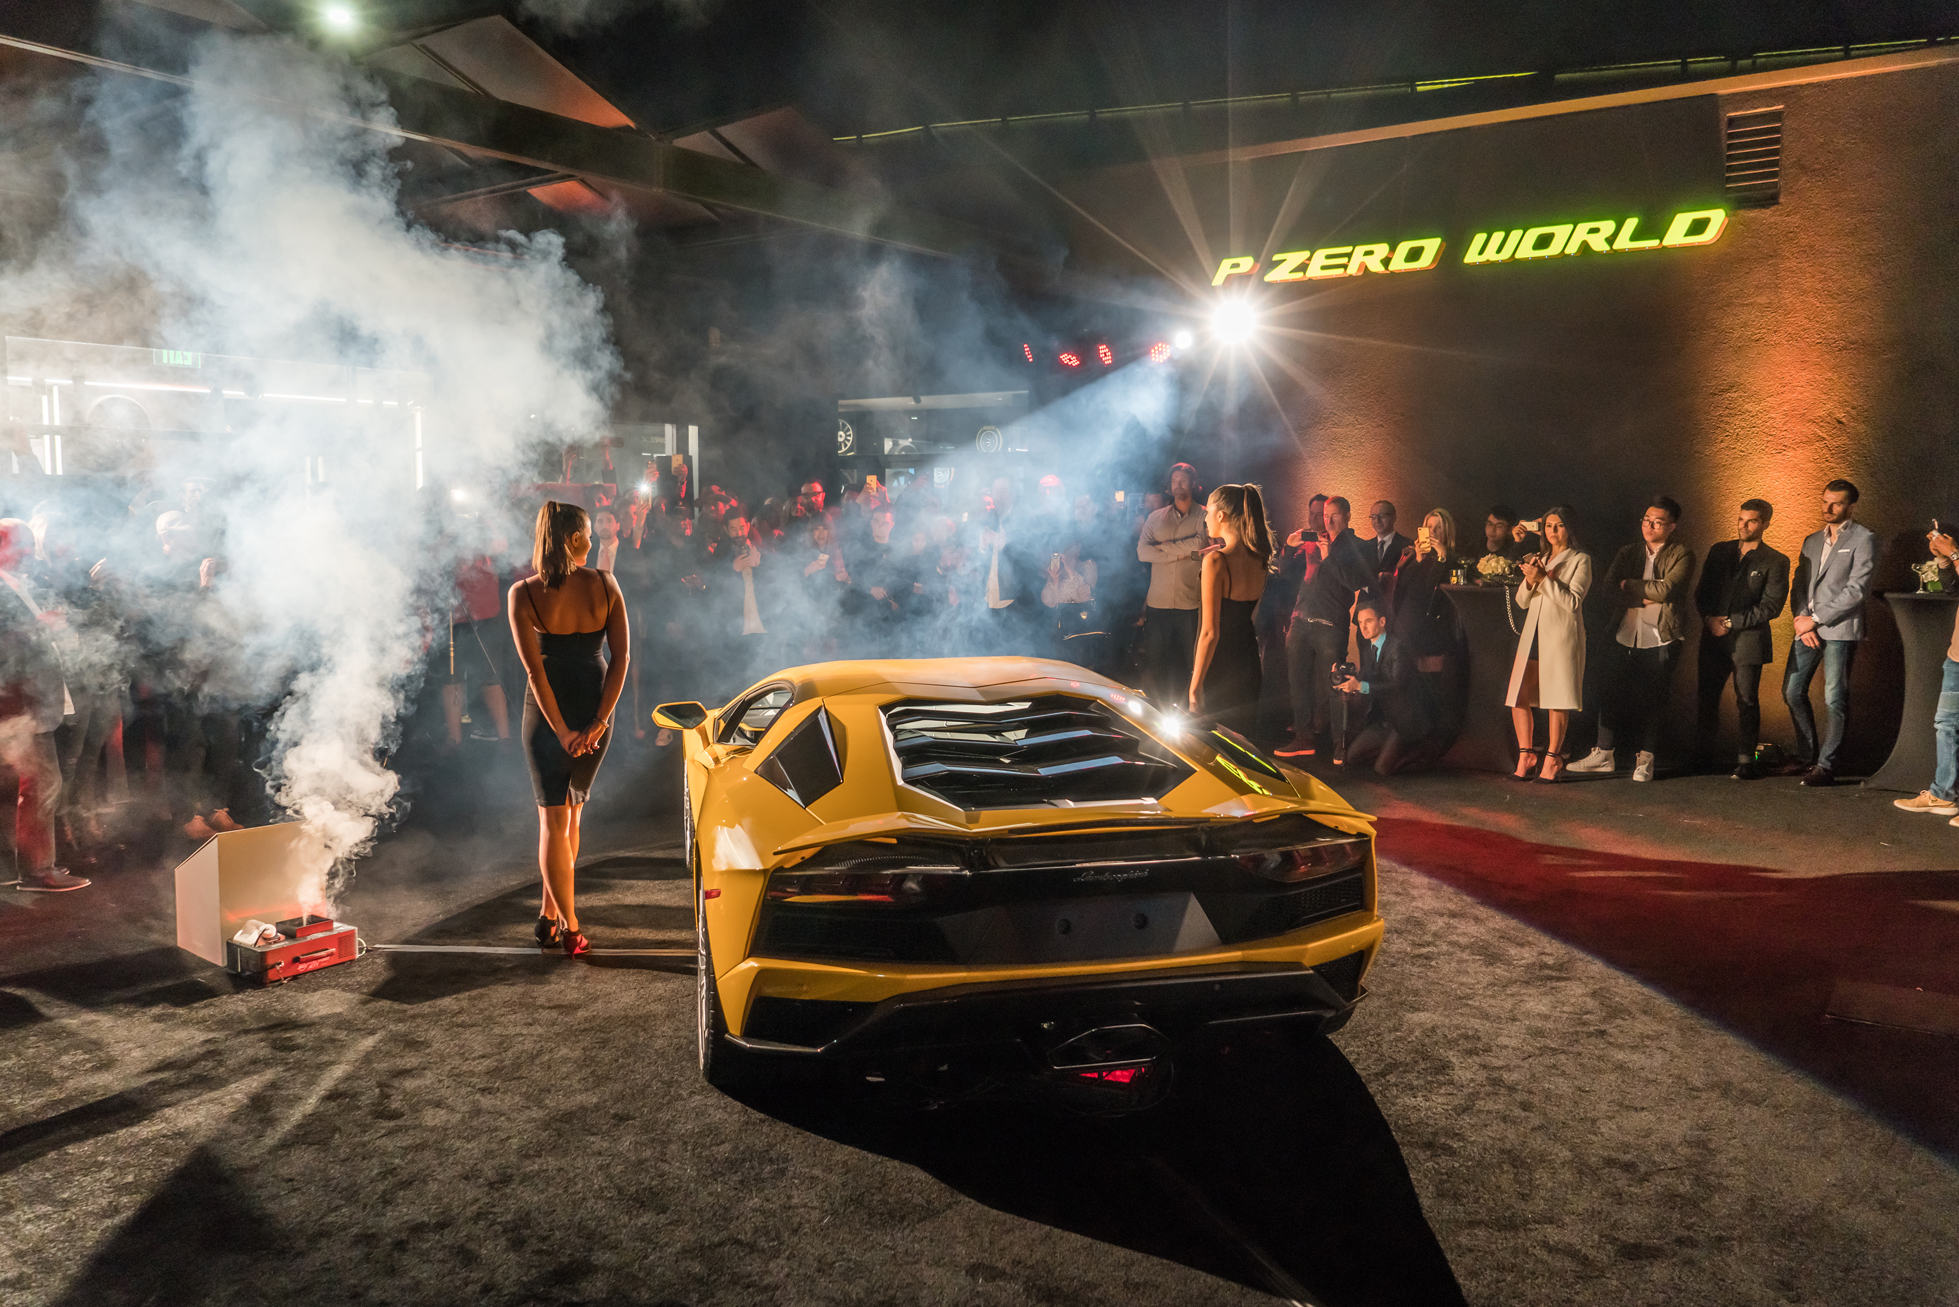 Amazing At Lamborghini Itu0027s Not Often We Get To Unveil New Cars. When This Happens  We Put On An Event. An Event That Matches The Standard Set By One Of  Italyu0027s Most ...